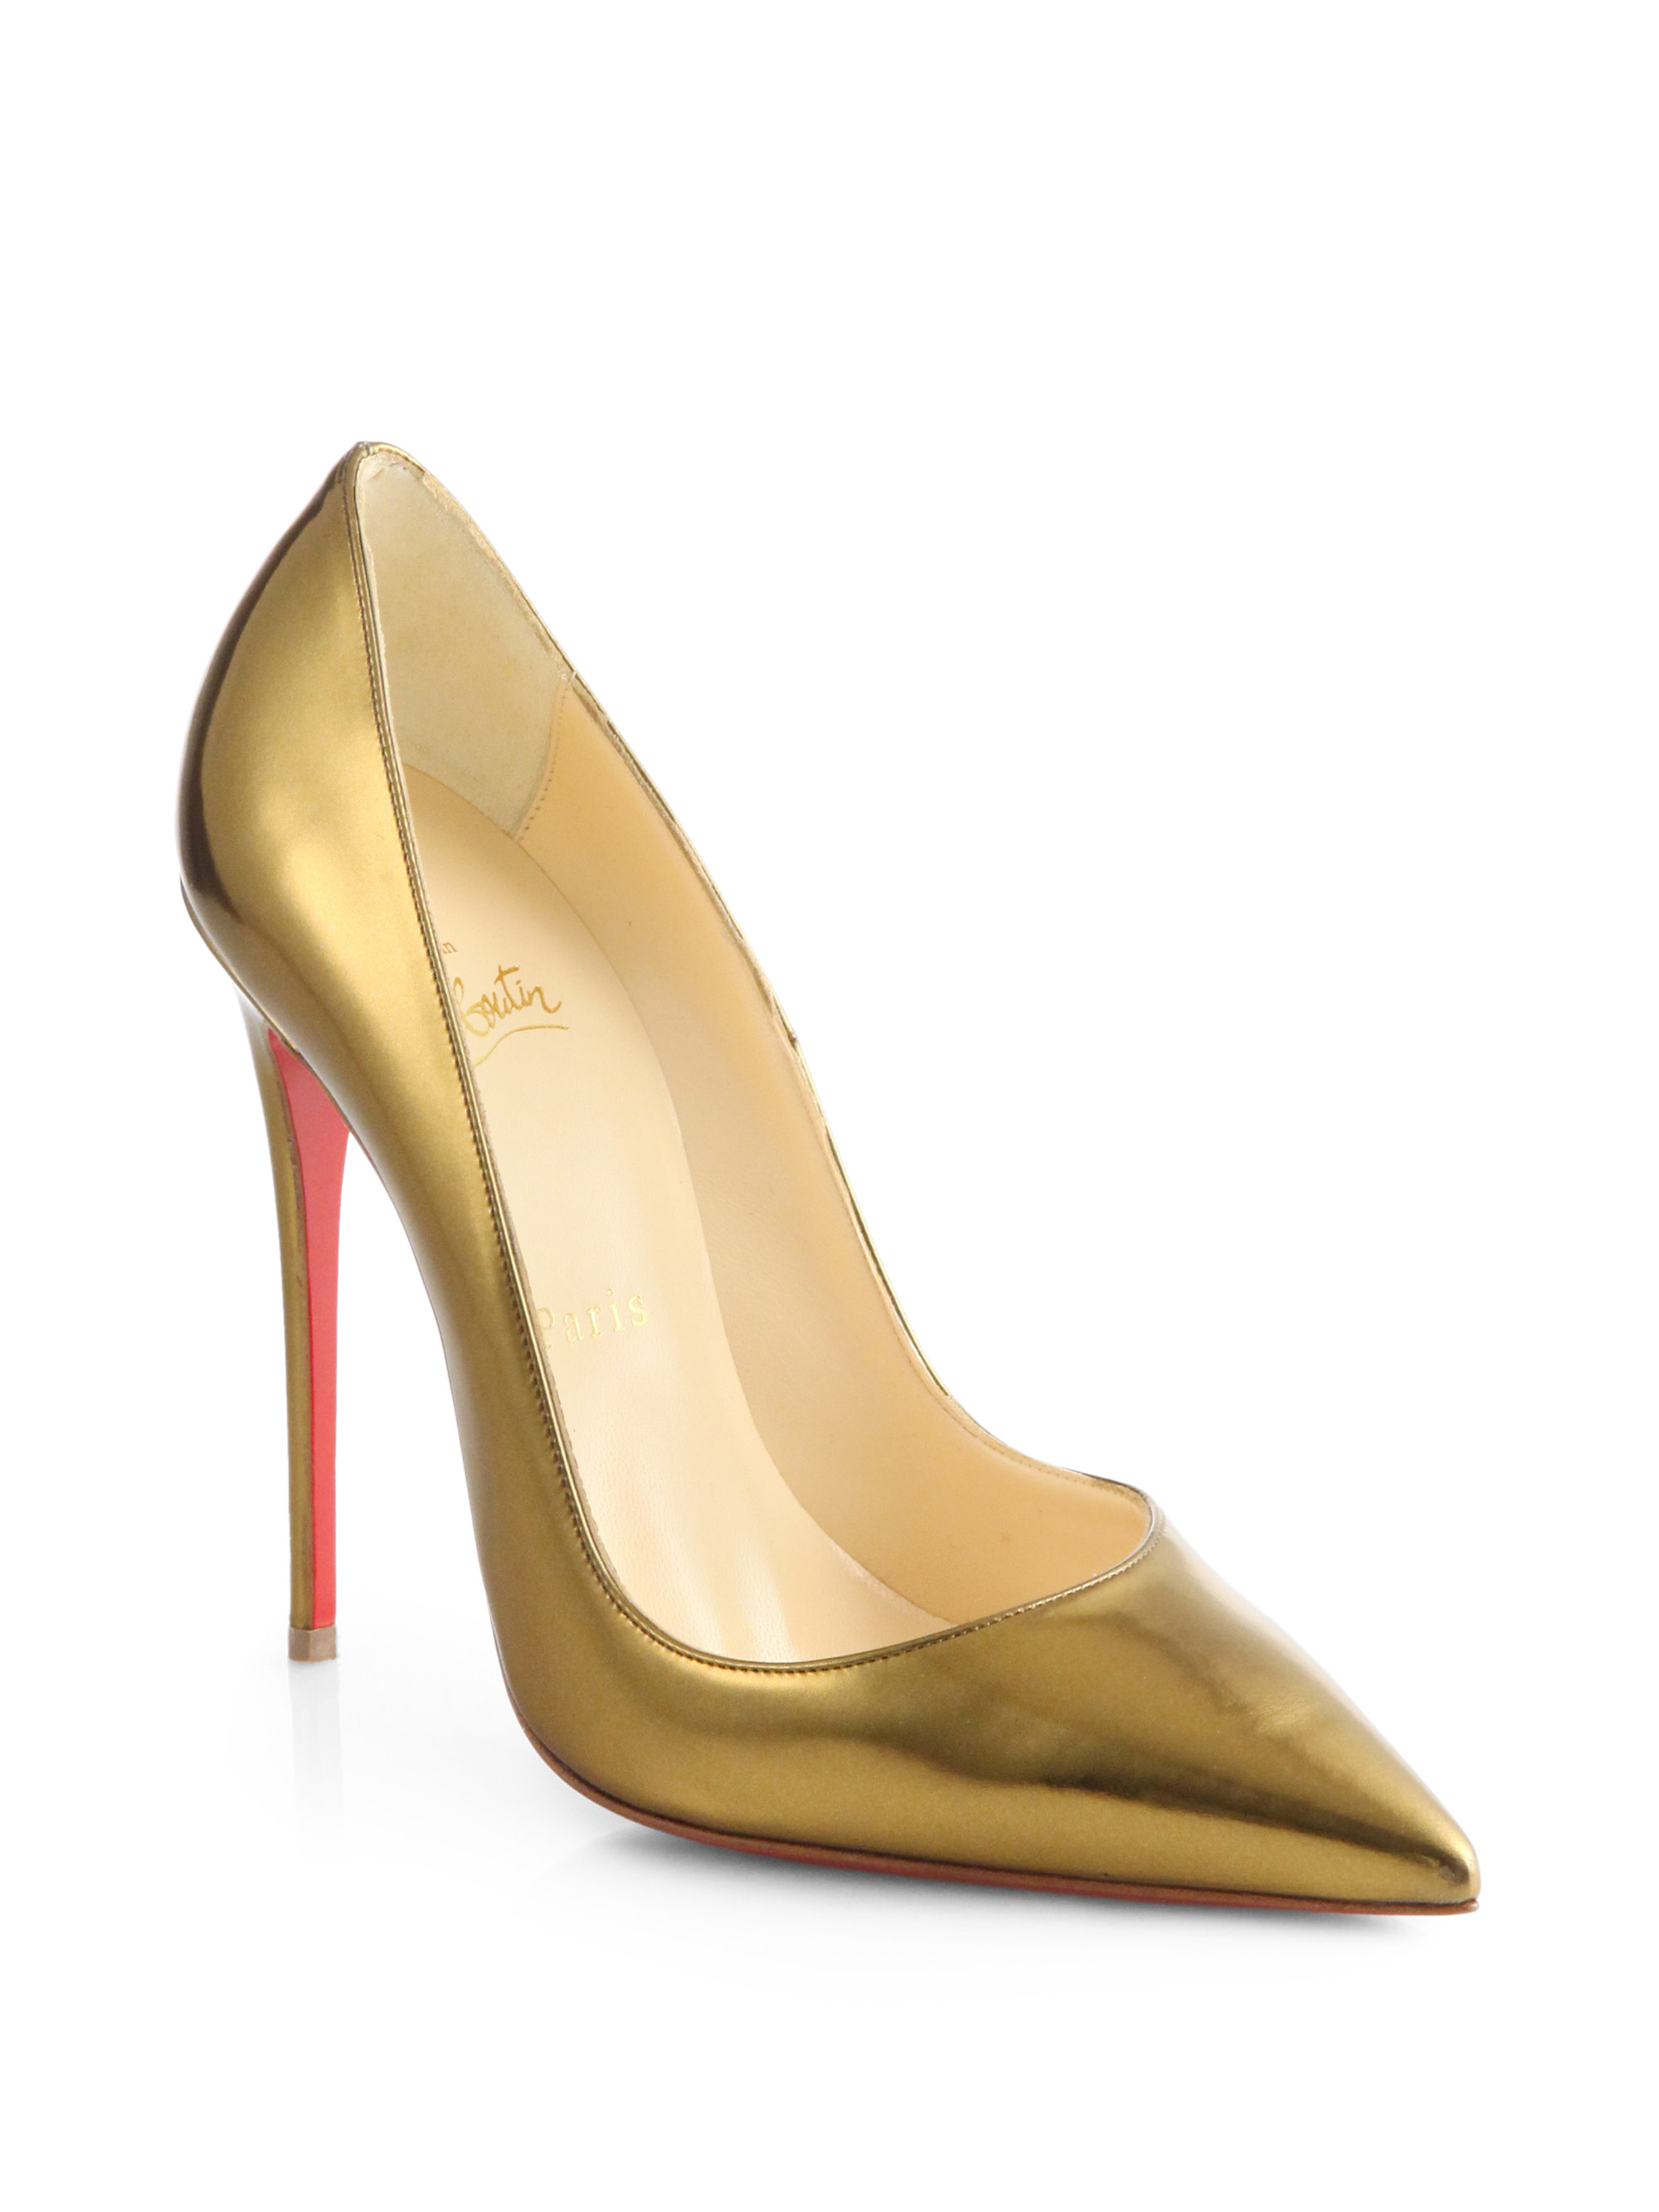 d307ac96f5b2 Christian louboutin So Kate Specchio Leather Pumps in Metallic